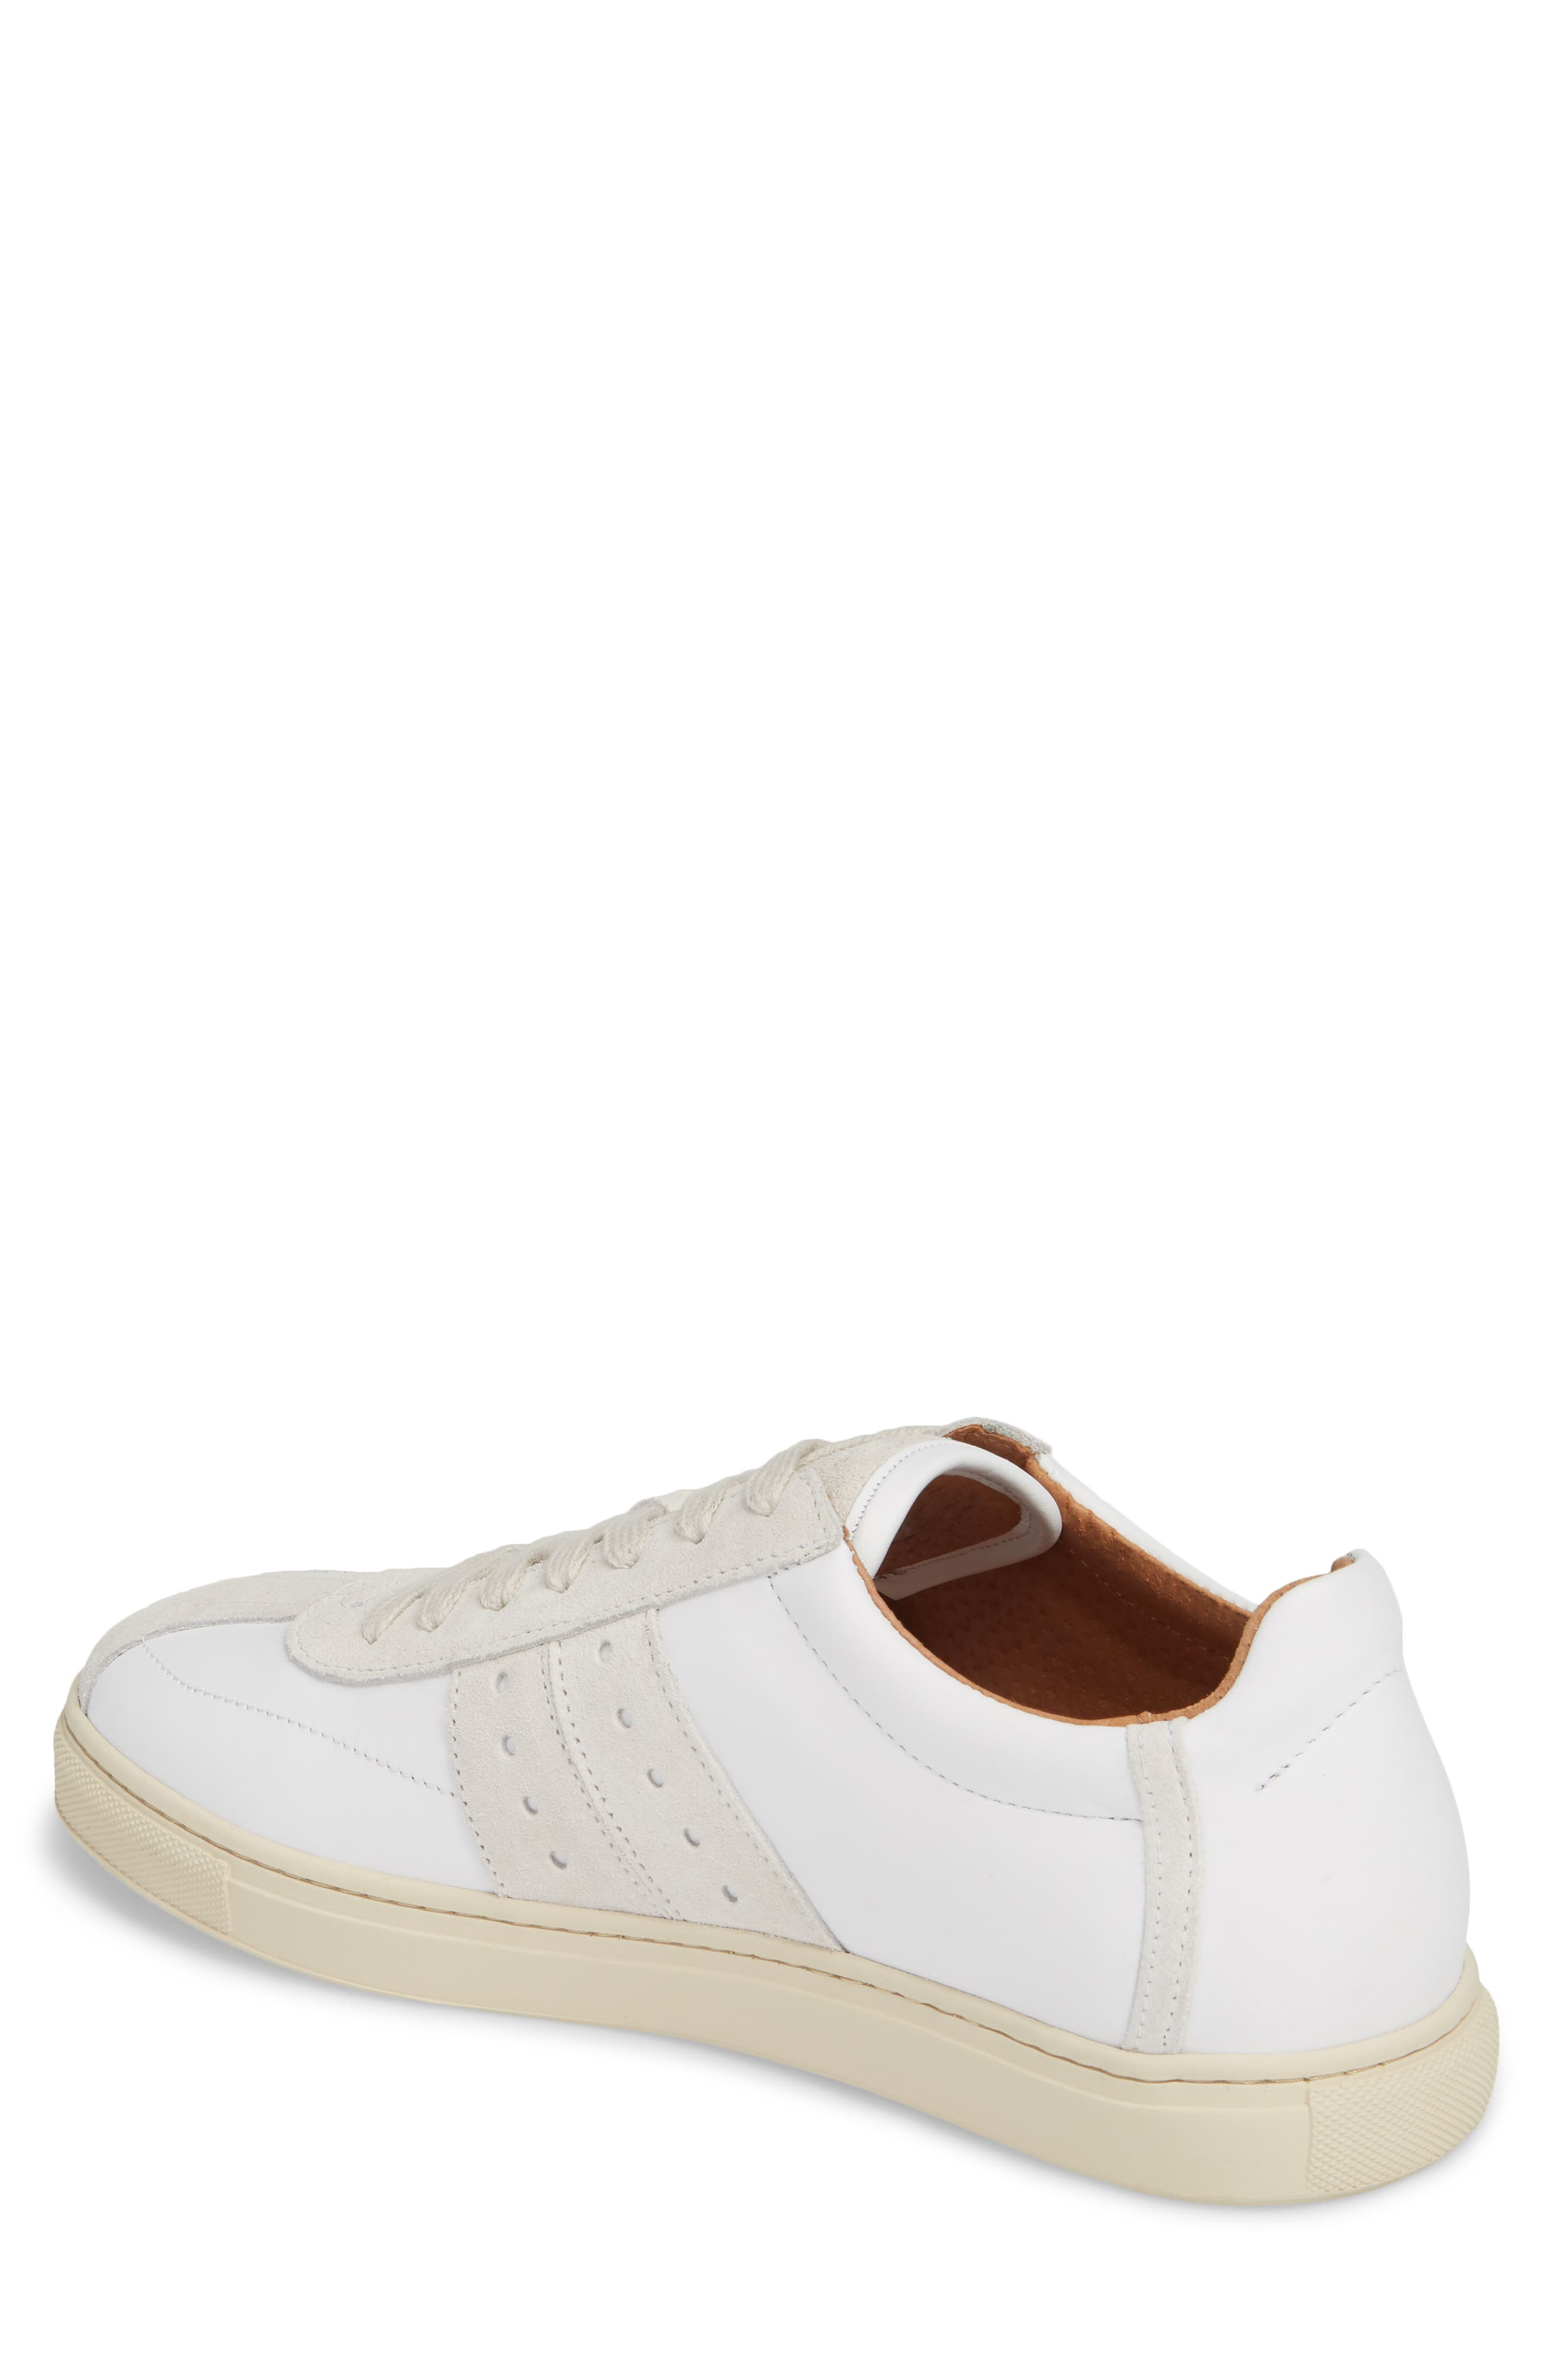 Duran New Mix Sneaker,                             Alternate thumbnail 2, color,                             White Leather/ Suede